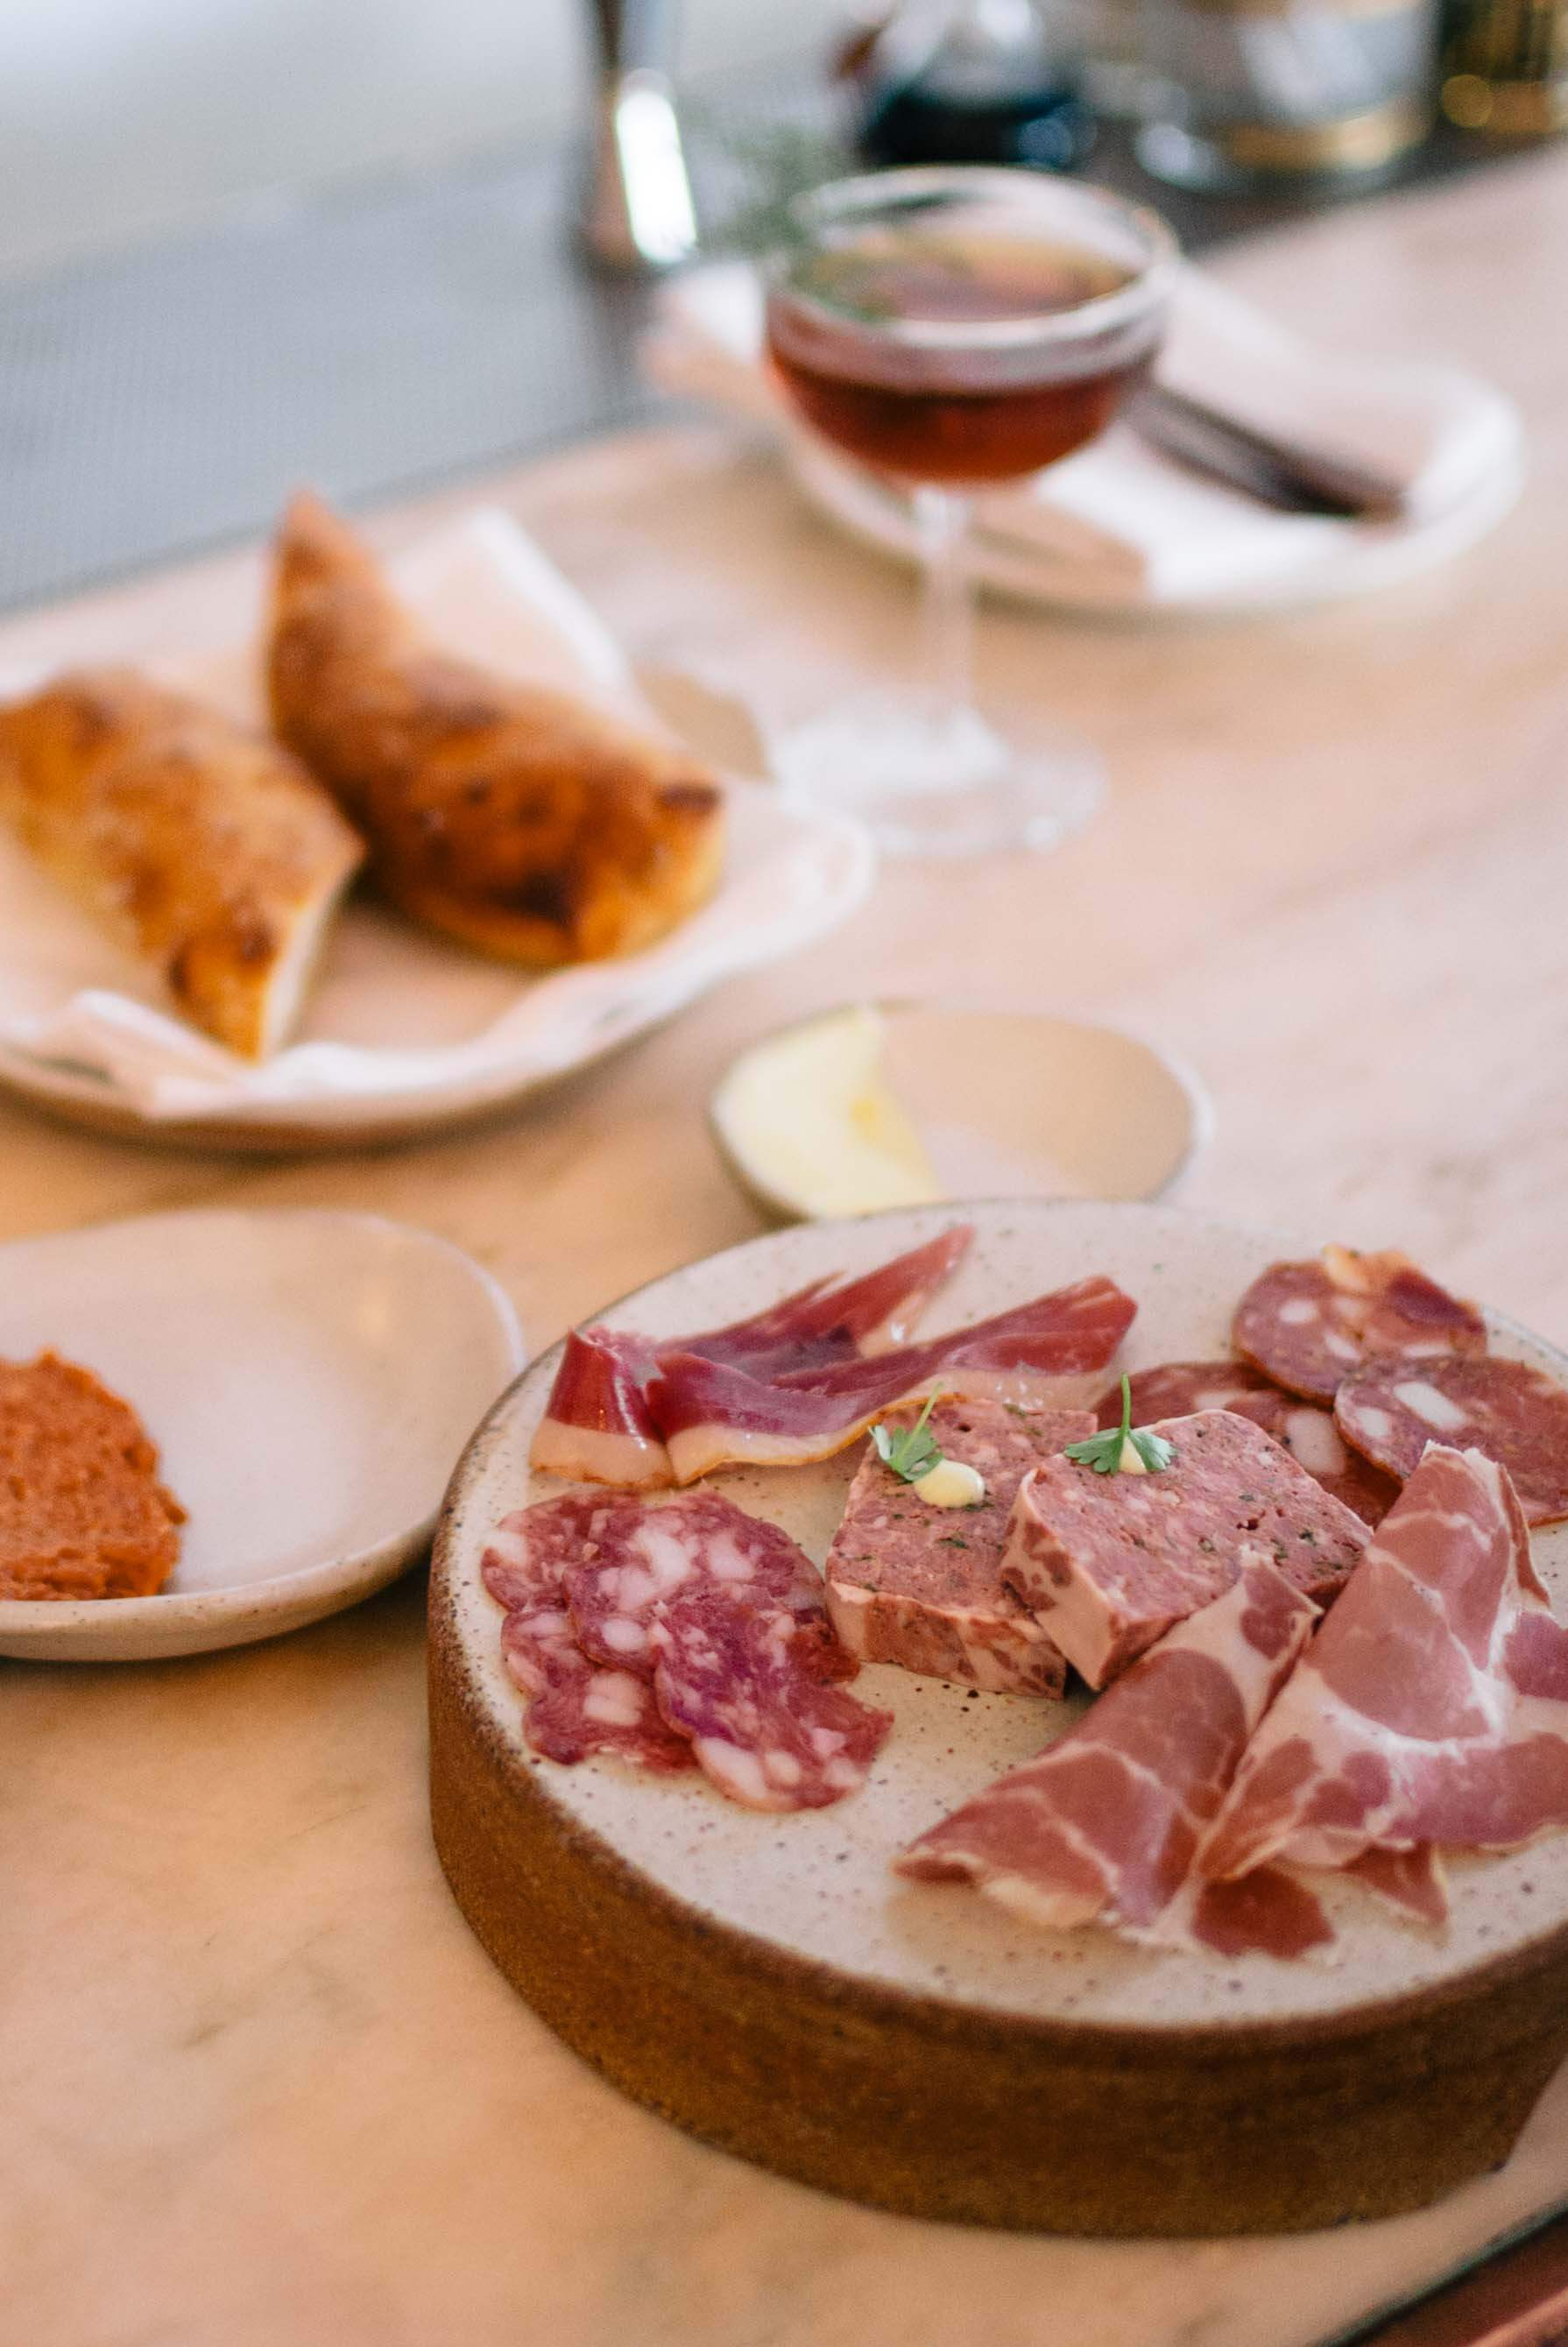 The Taste SF recommends Gwen for the best cocktails in Hollywood visit Chef Curtis Stone's Gwen and try the homemade charcuterie from the butcher shop.